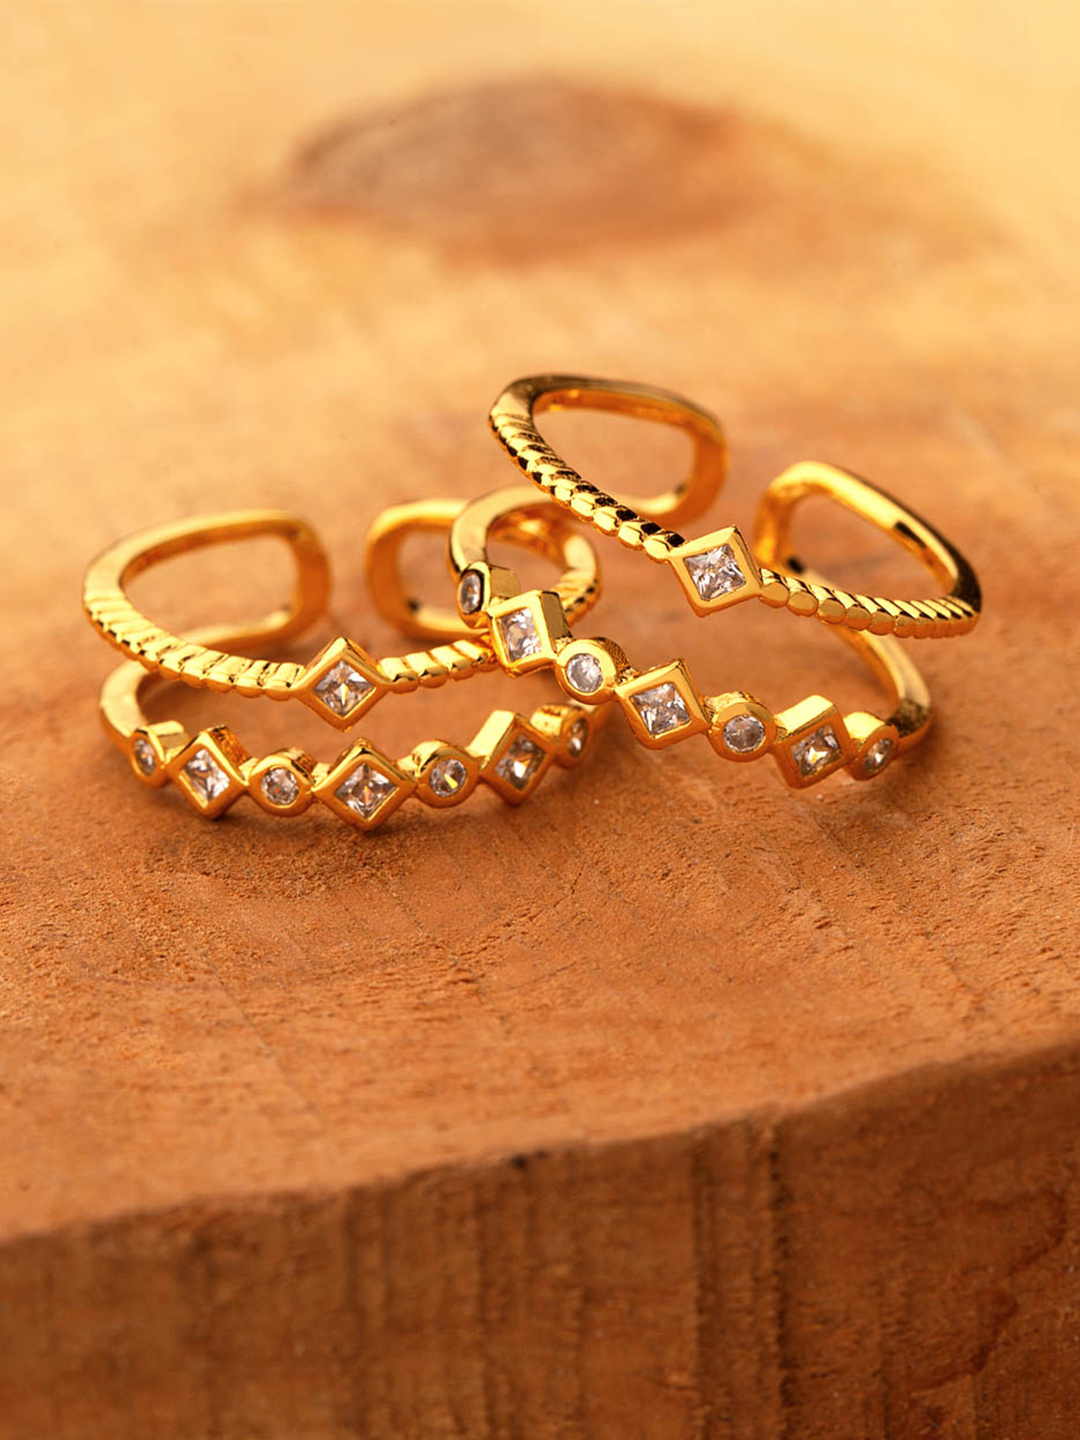 Voylla Women Set of 2 Brass-Plated Gold-Toned & White CZ-Studded Toe Rings Price in India